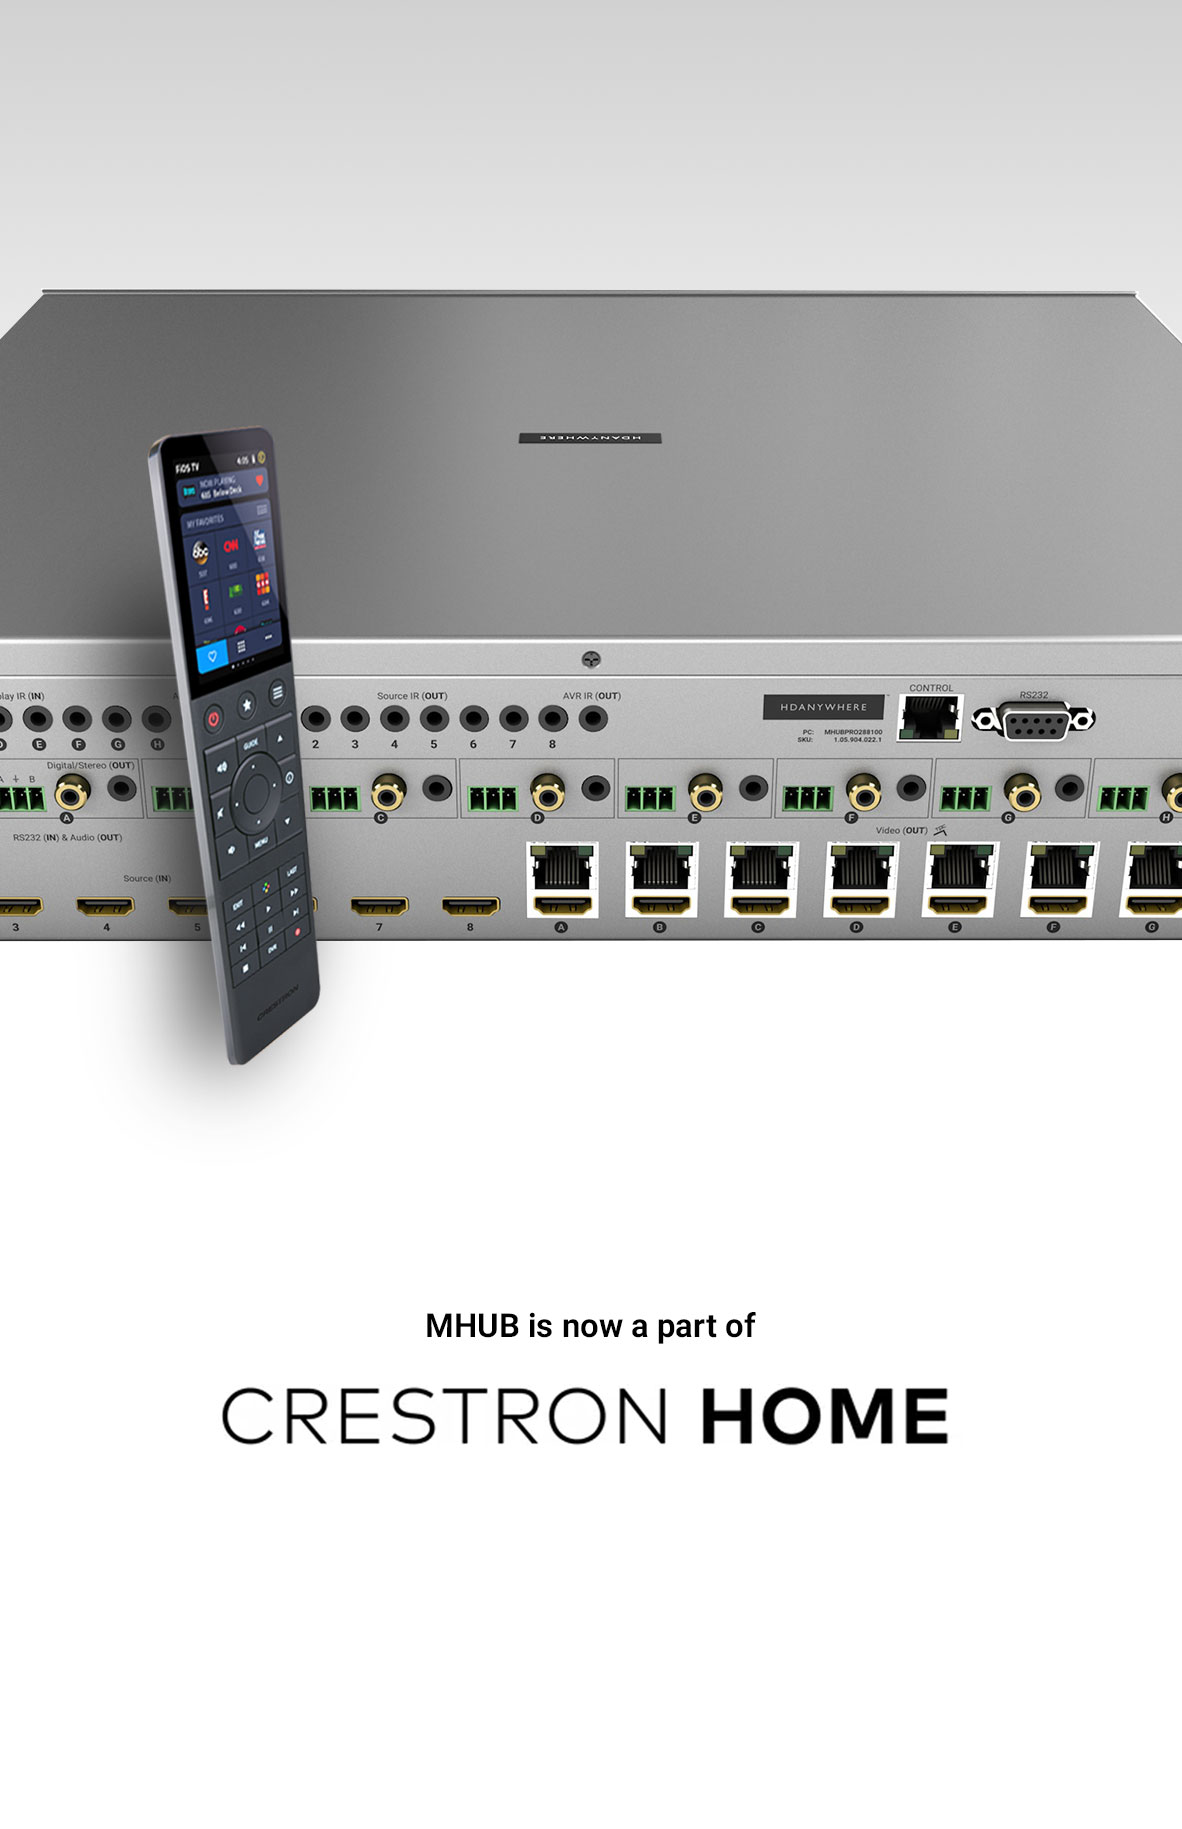 MHUB now works with Crestron Home